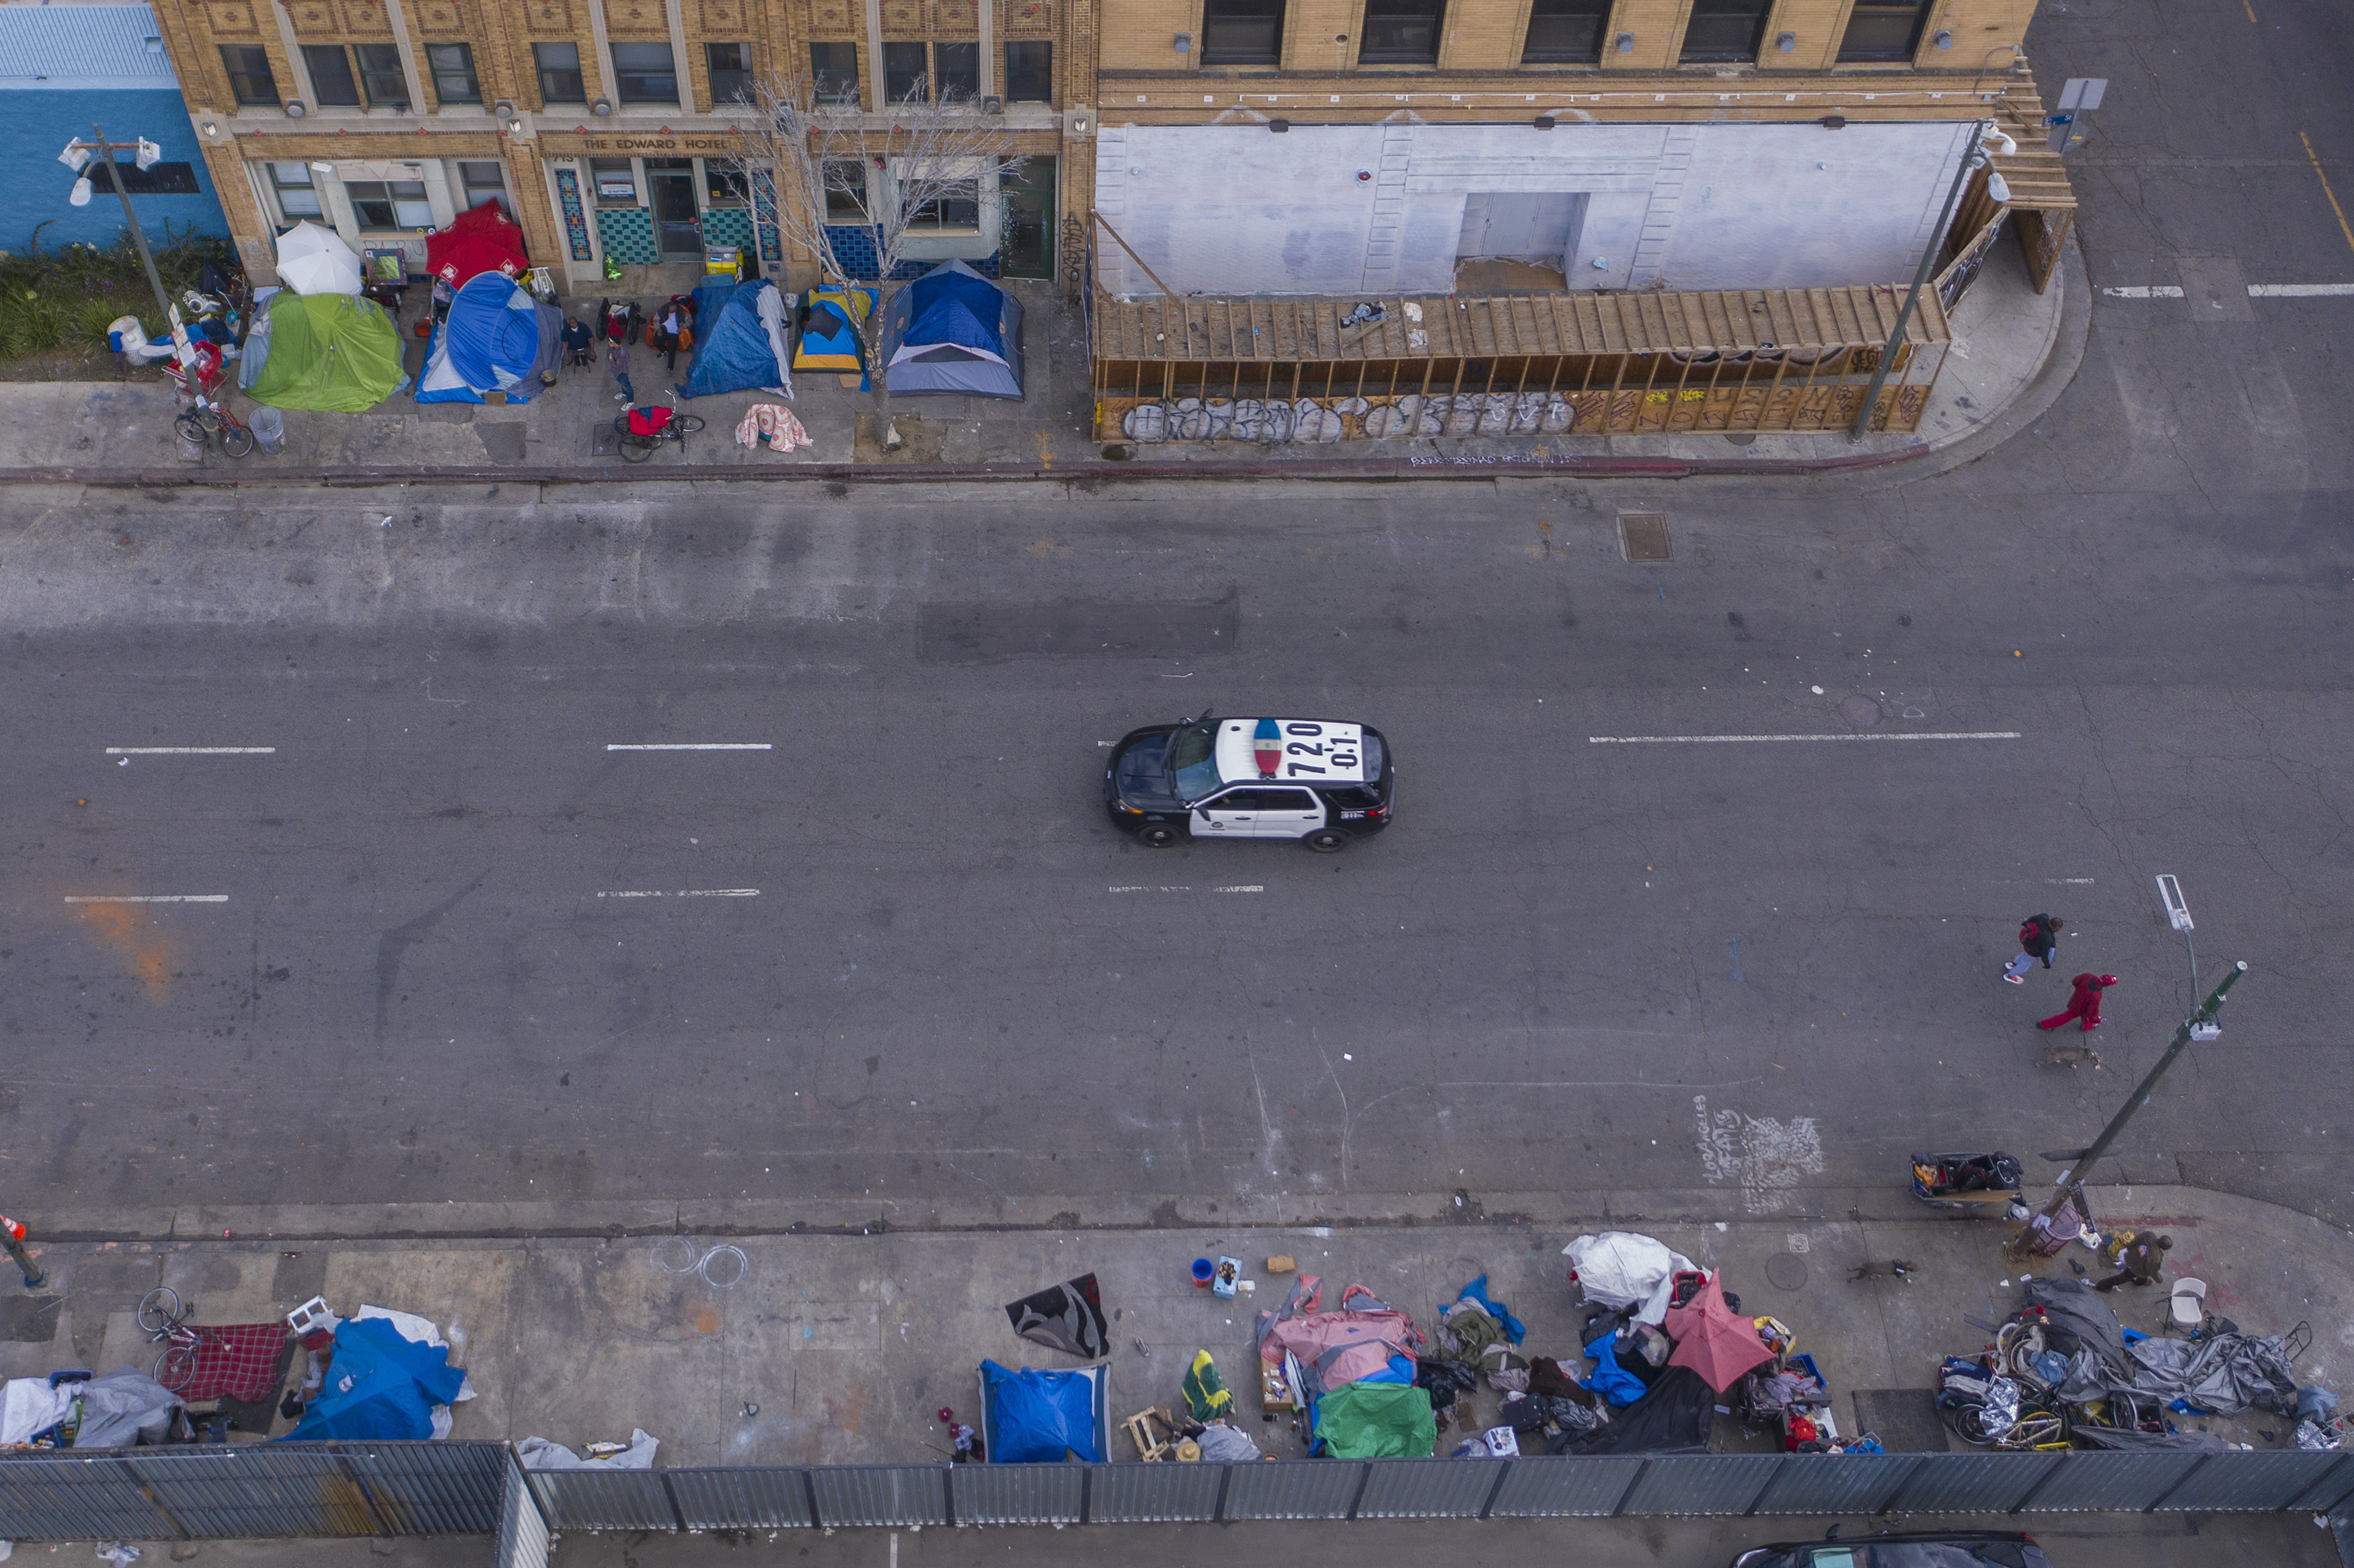 A police car passes homeless people on Skid Row on March 20, 2020 in Los Angeles, California.(Photo: David McNew/Getty Images)